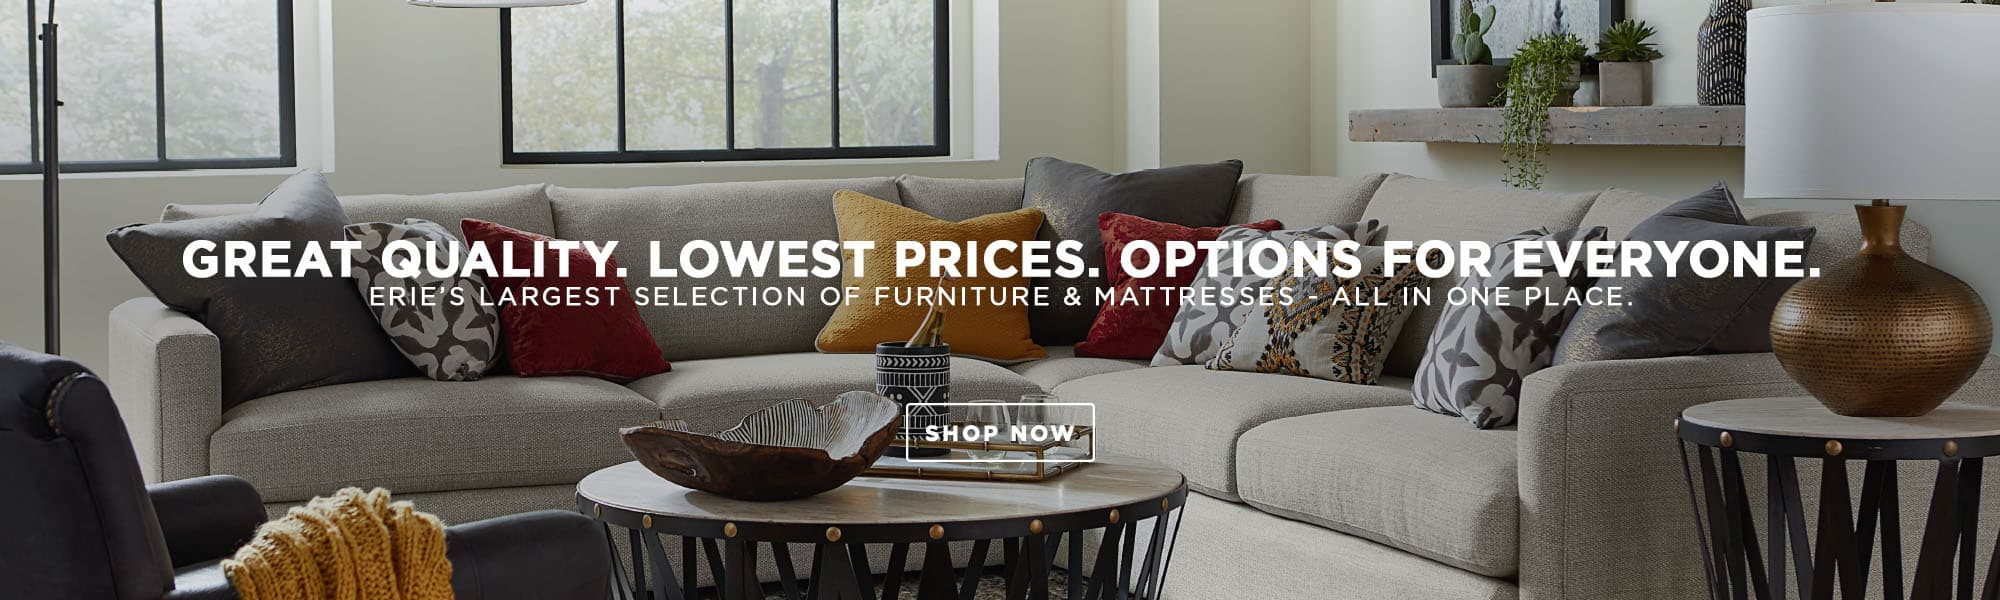 Superb Furniture And Mattress Store John V Schultz Furniture Gmtry Best Dining Table And Chair Ideas Images Gmtryco